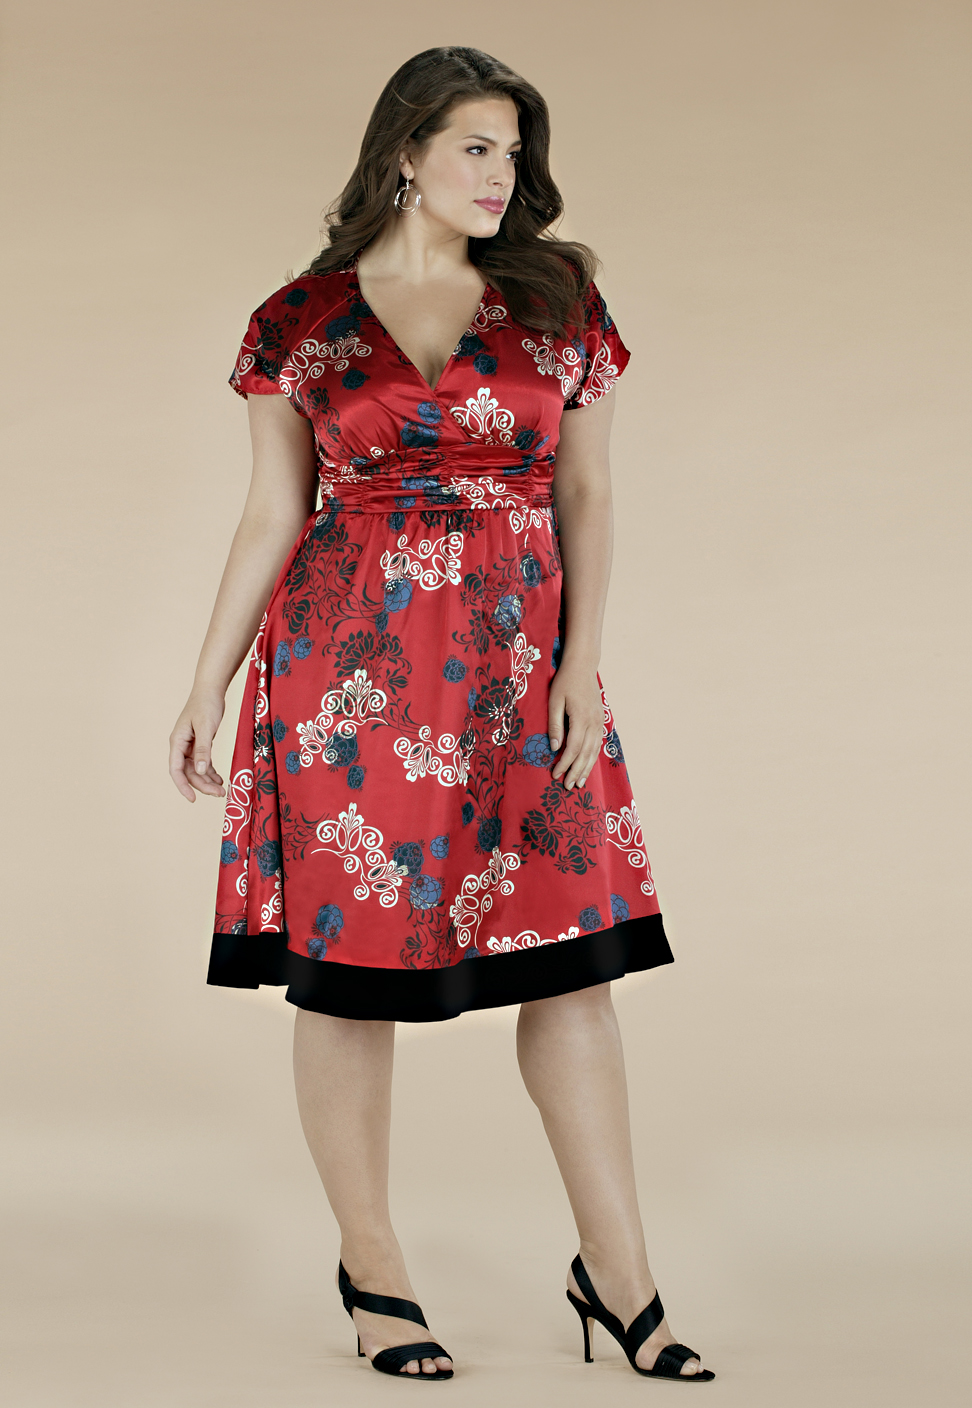 Cato Fashions Plus Size Dresses Cato Plus Size Fashion Stores